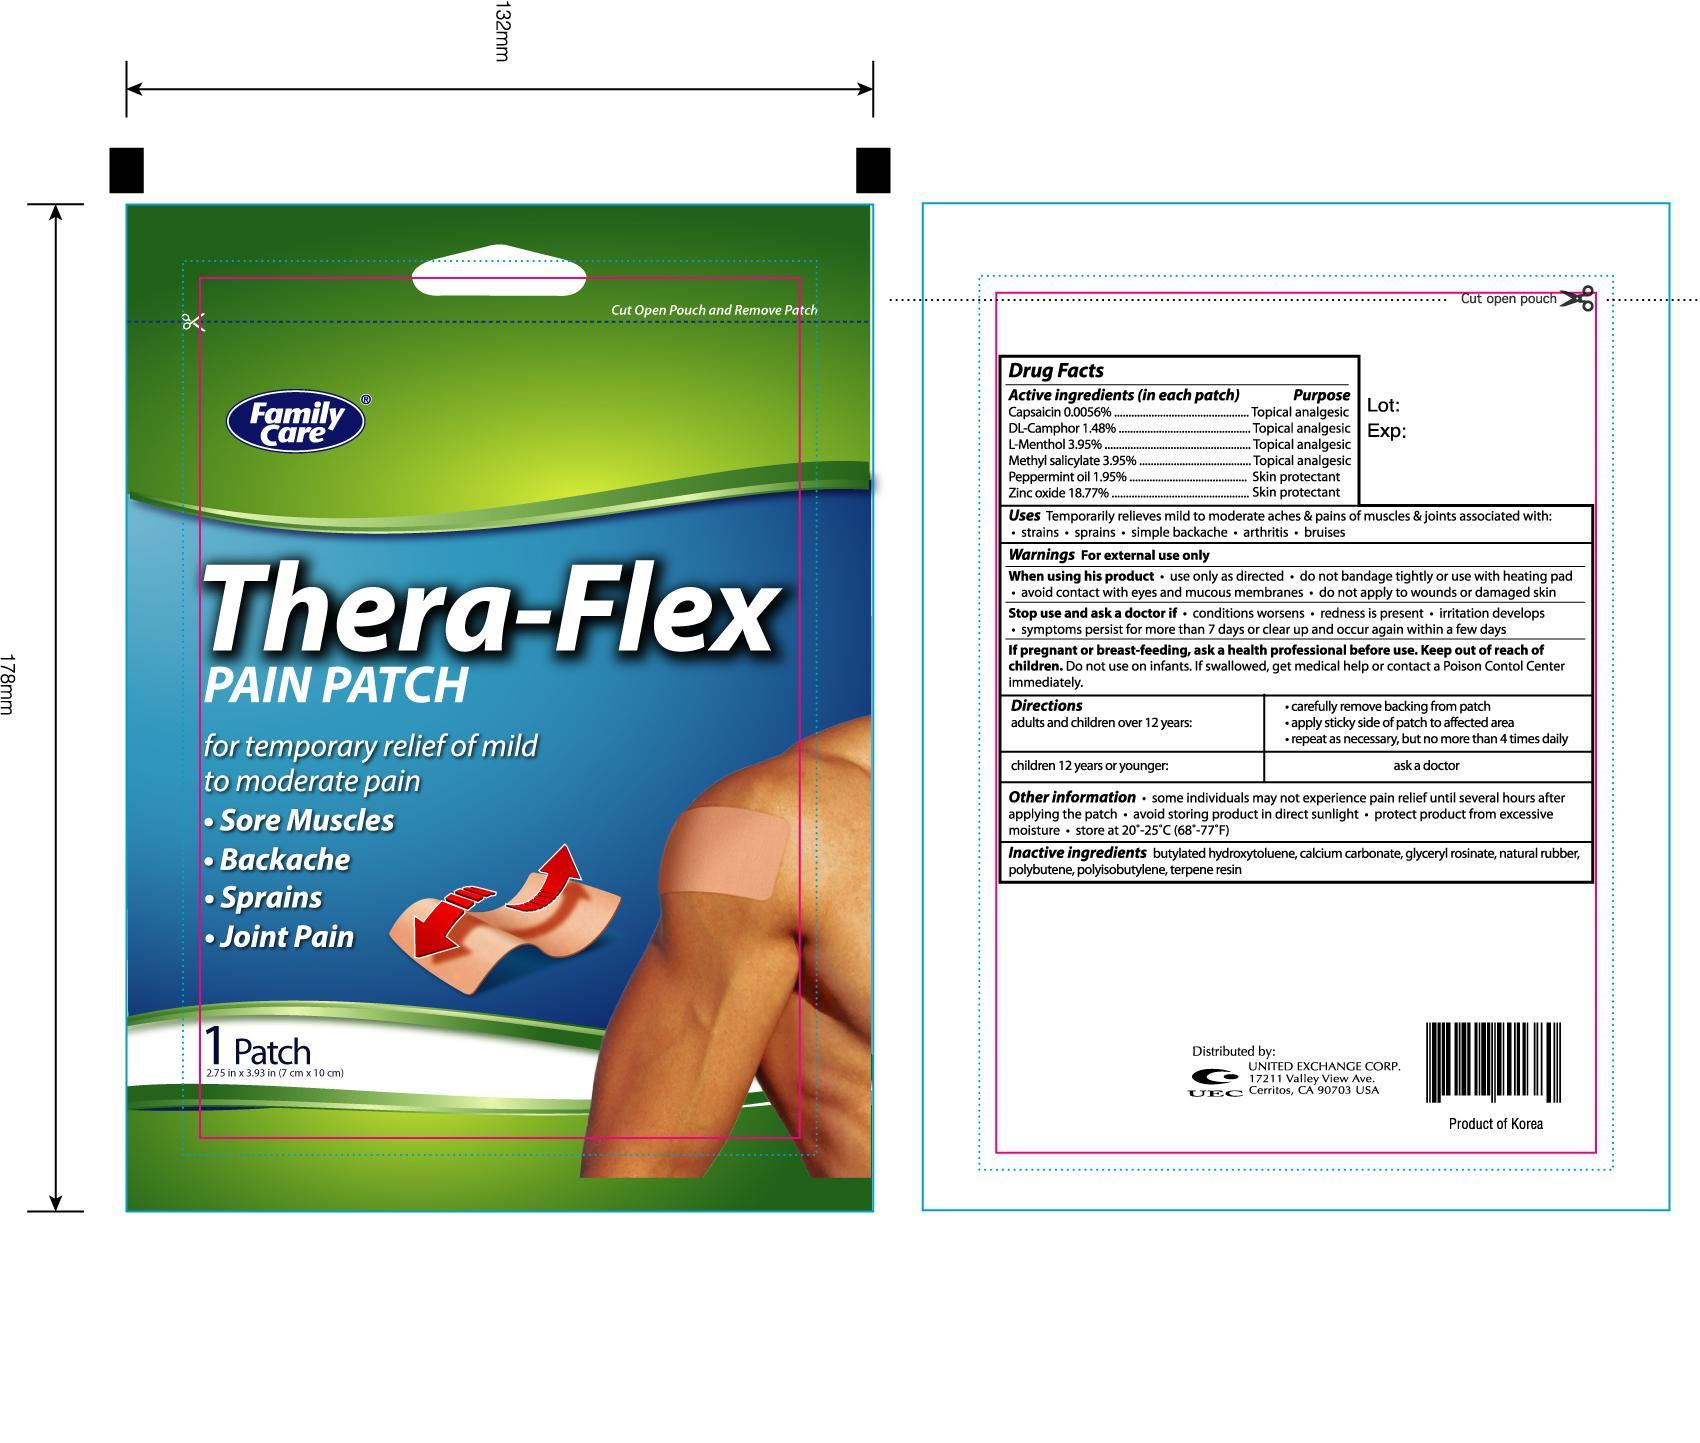 Family Care Thera Flex Pain (Capsaicin, Camphor, Menthol, Methyl Salicylate, Peppermint Oil, Zinc Oxide) Patch [United Exchange Corp]